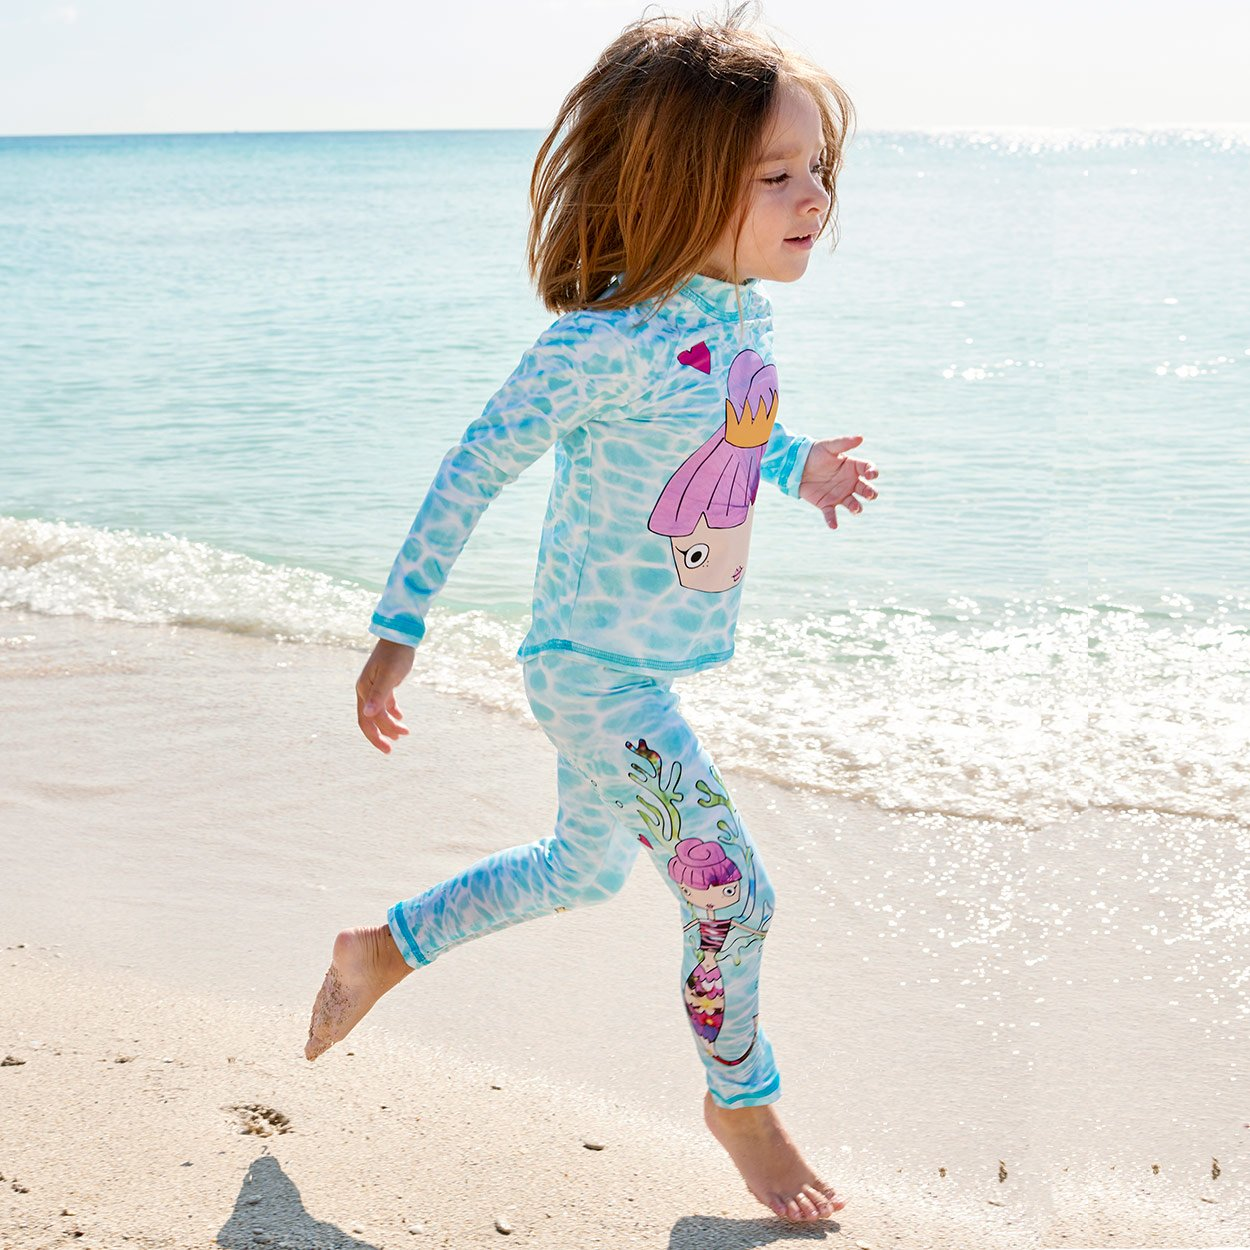 Mermaids 2Pc Rash Guard Set Right View Girl Running On The Beach Sunpoplife